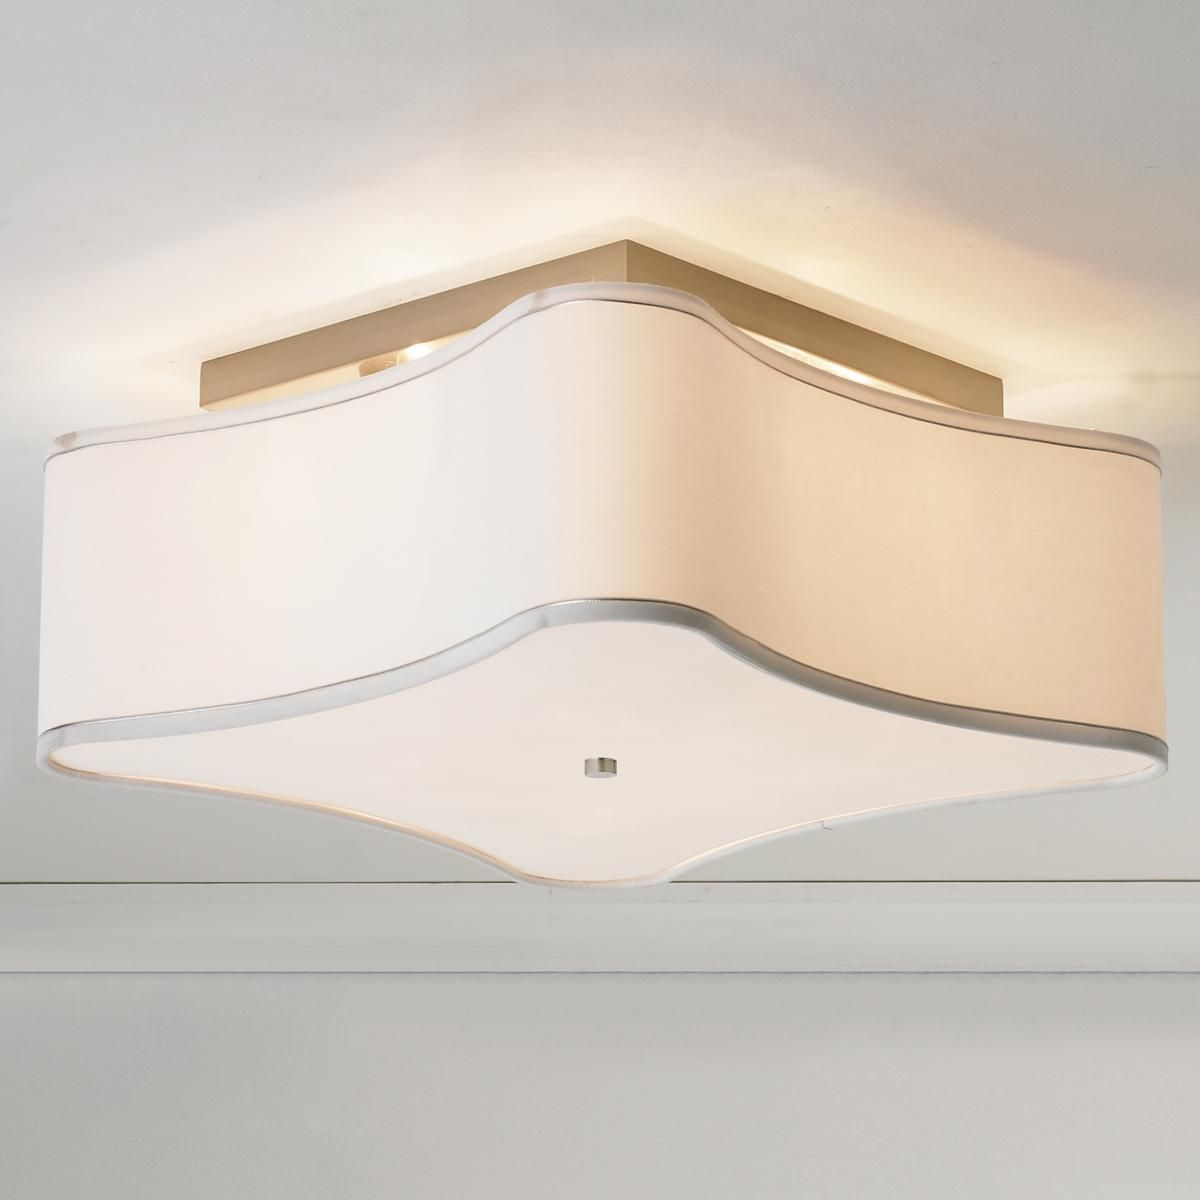 Scalloped shade semi flush ceiling light 4 light ceiling flush soft modern puzzle shade ceiling light silky smooth white fabric forms a puzzle piece shape in this soft modern flush mount ceiling light aloadofball Gallery